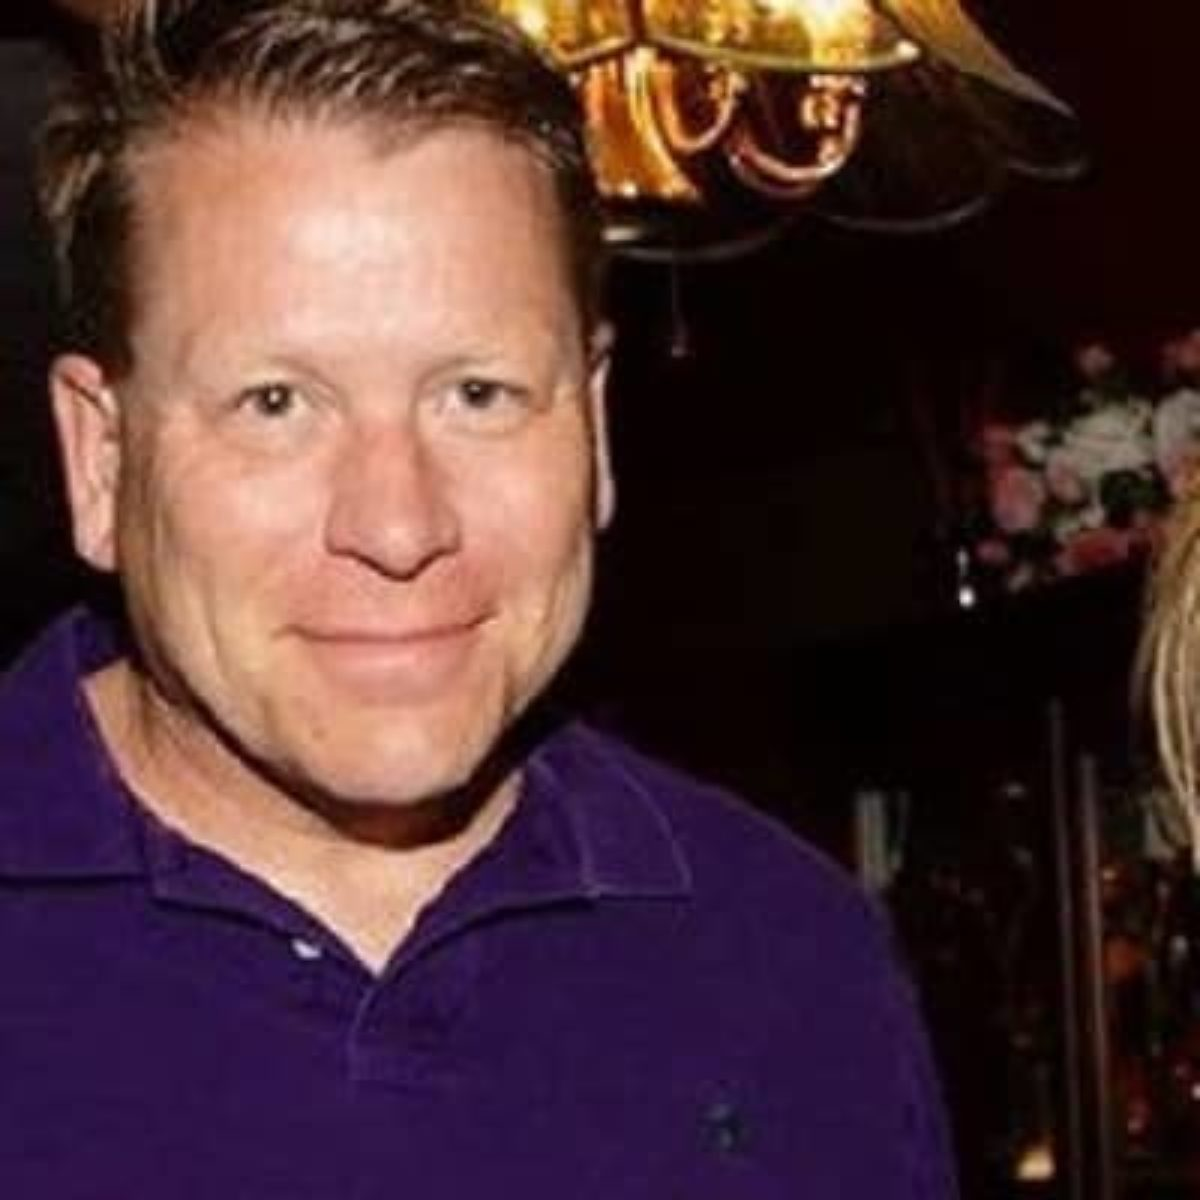 Bruce Bealke Bio, Wiki, Age, Net Worth, Wife, Personal Life, and Facts